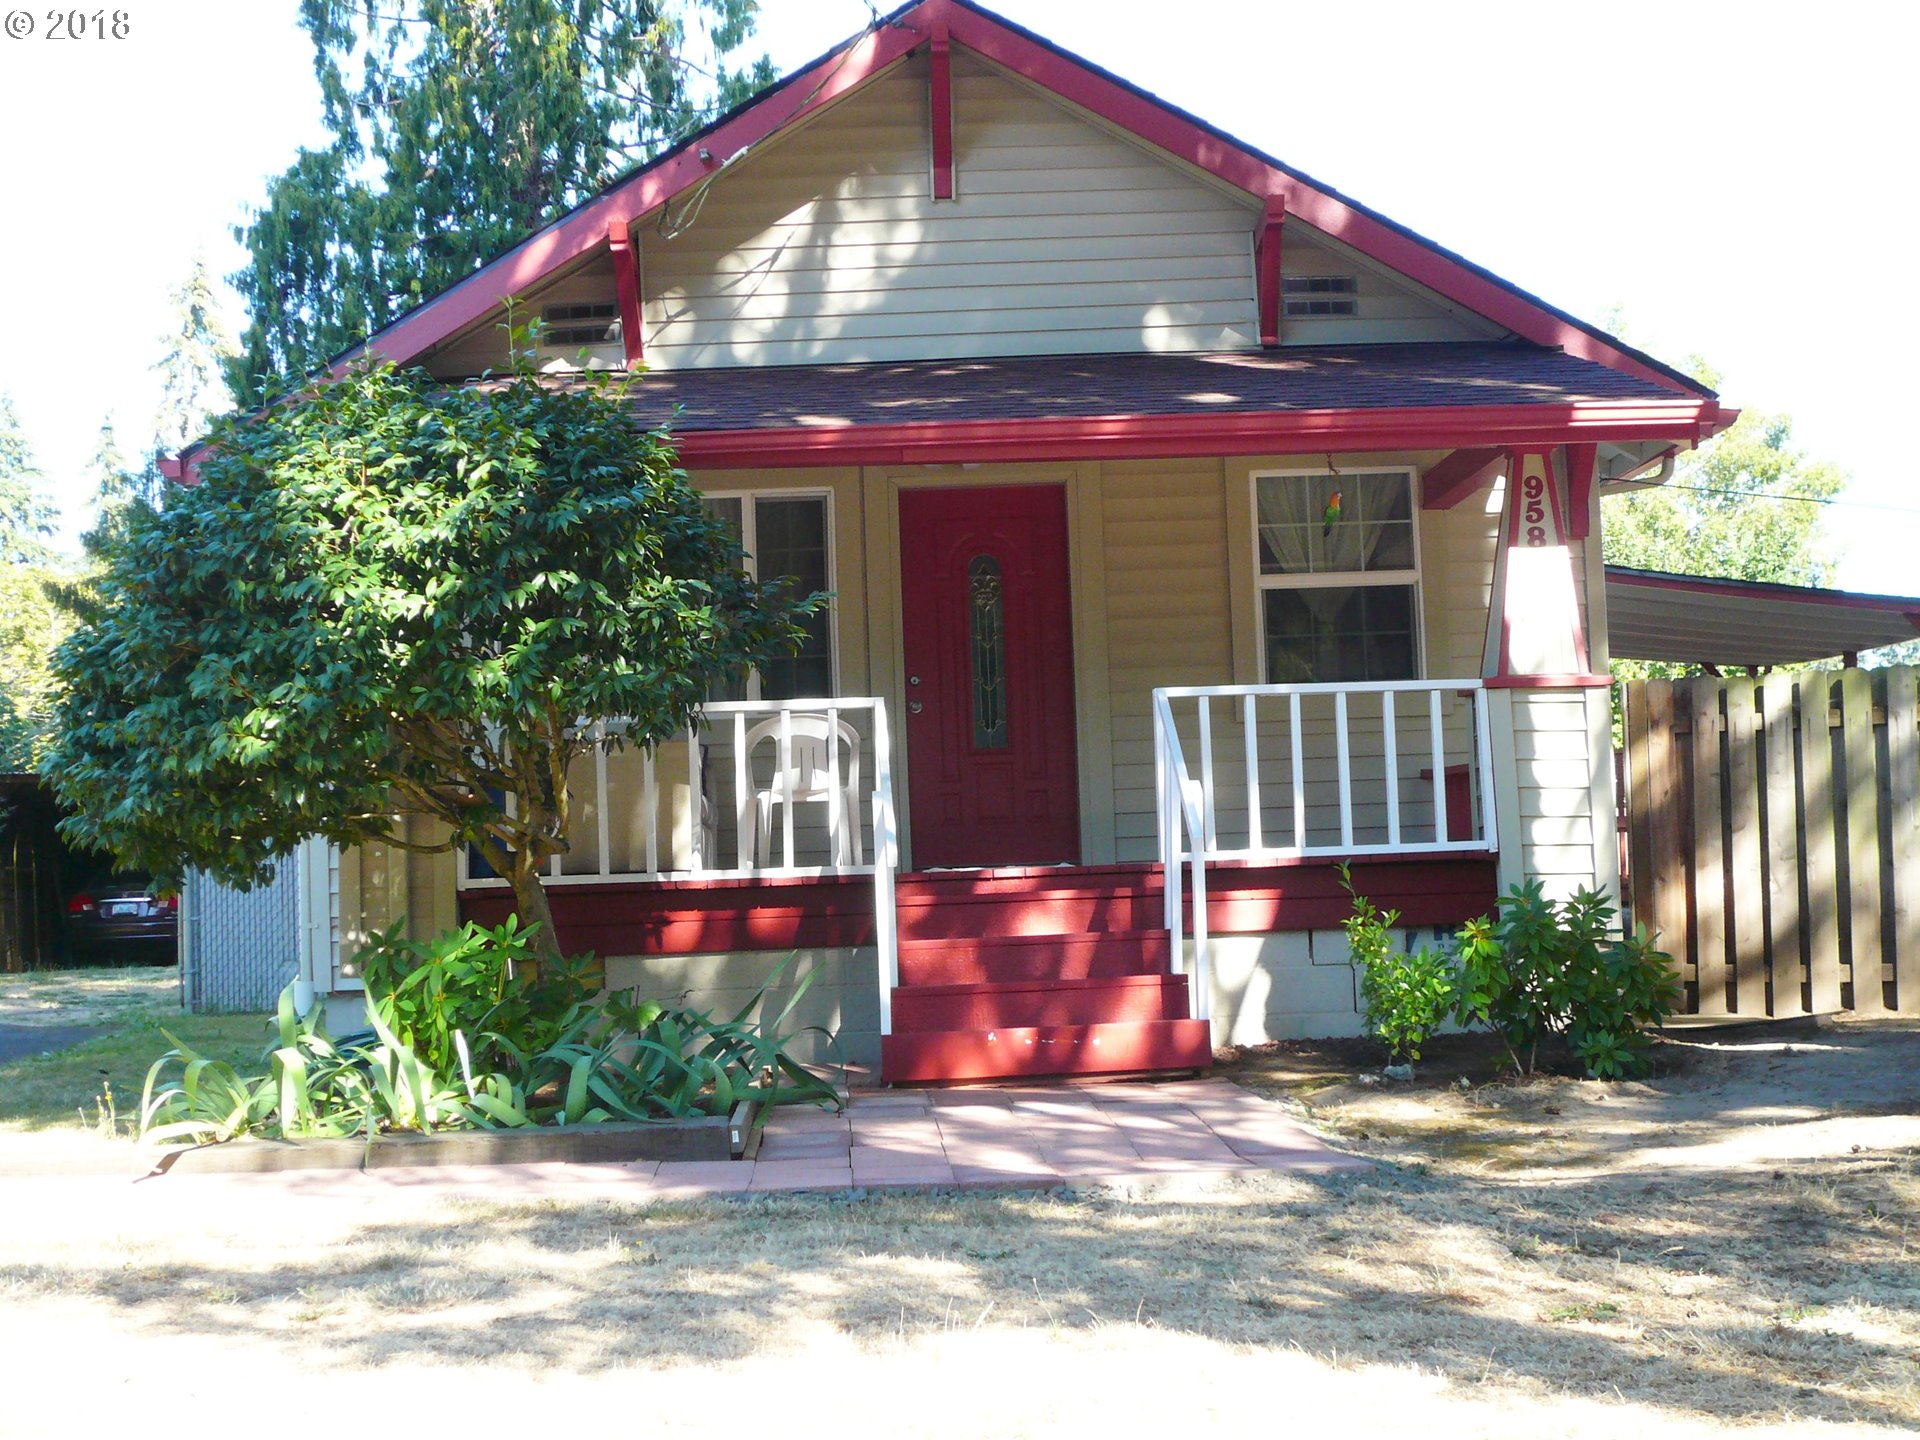 958 NW CONNELL AVE, Hillsboro, OR 97124